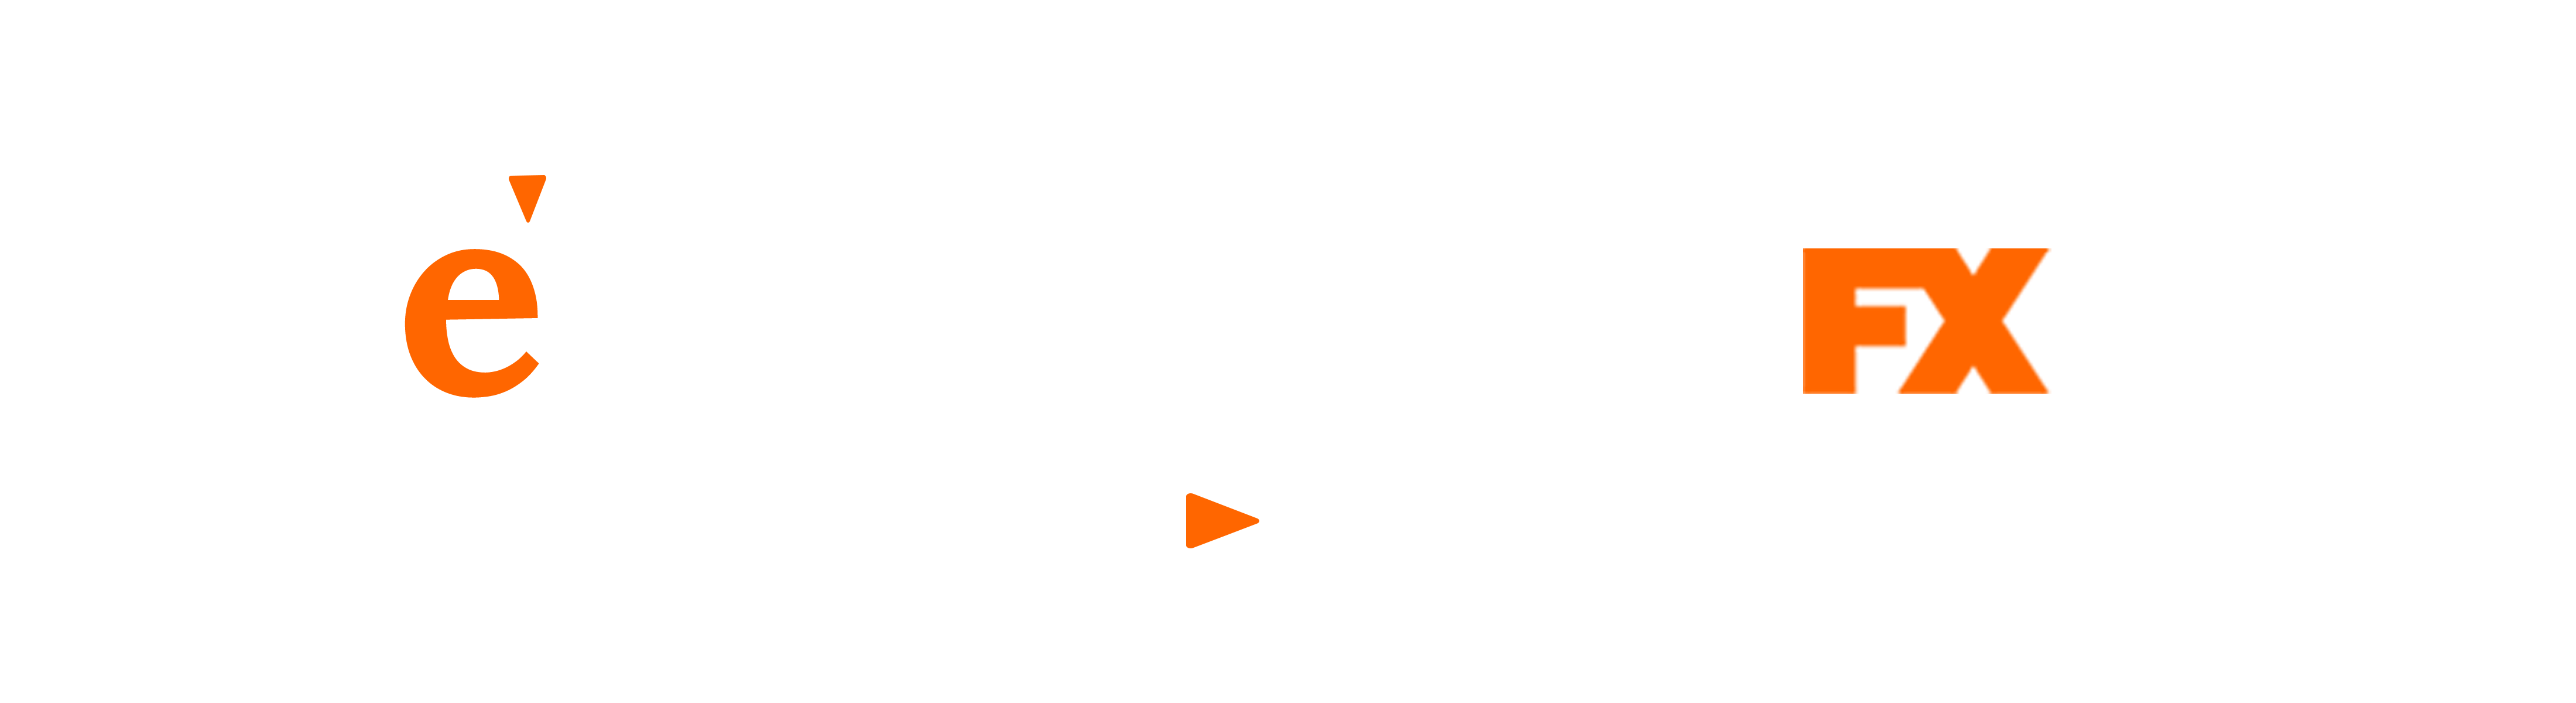 eCompareFx logo - A Financial review and comparison blog